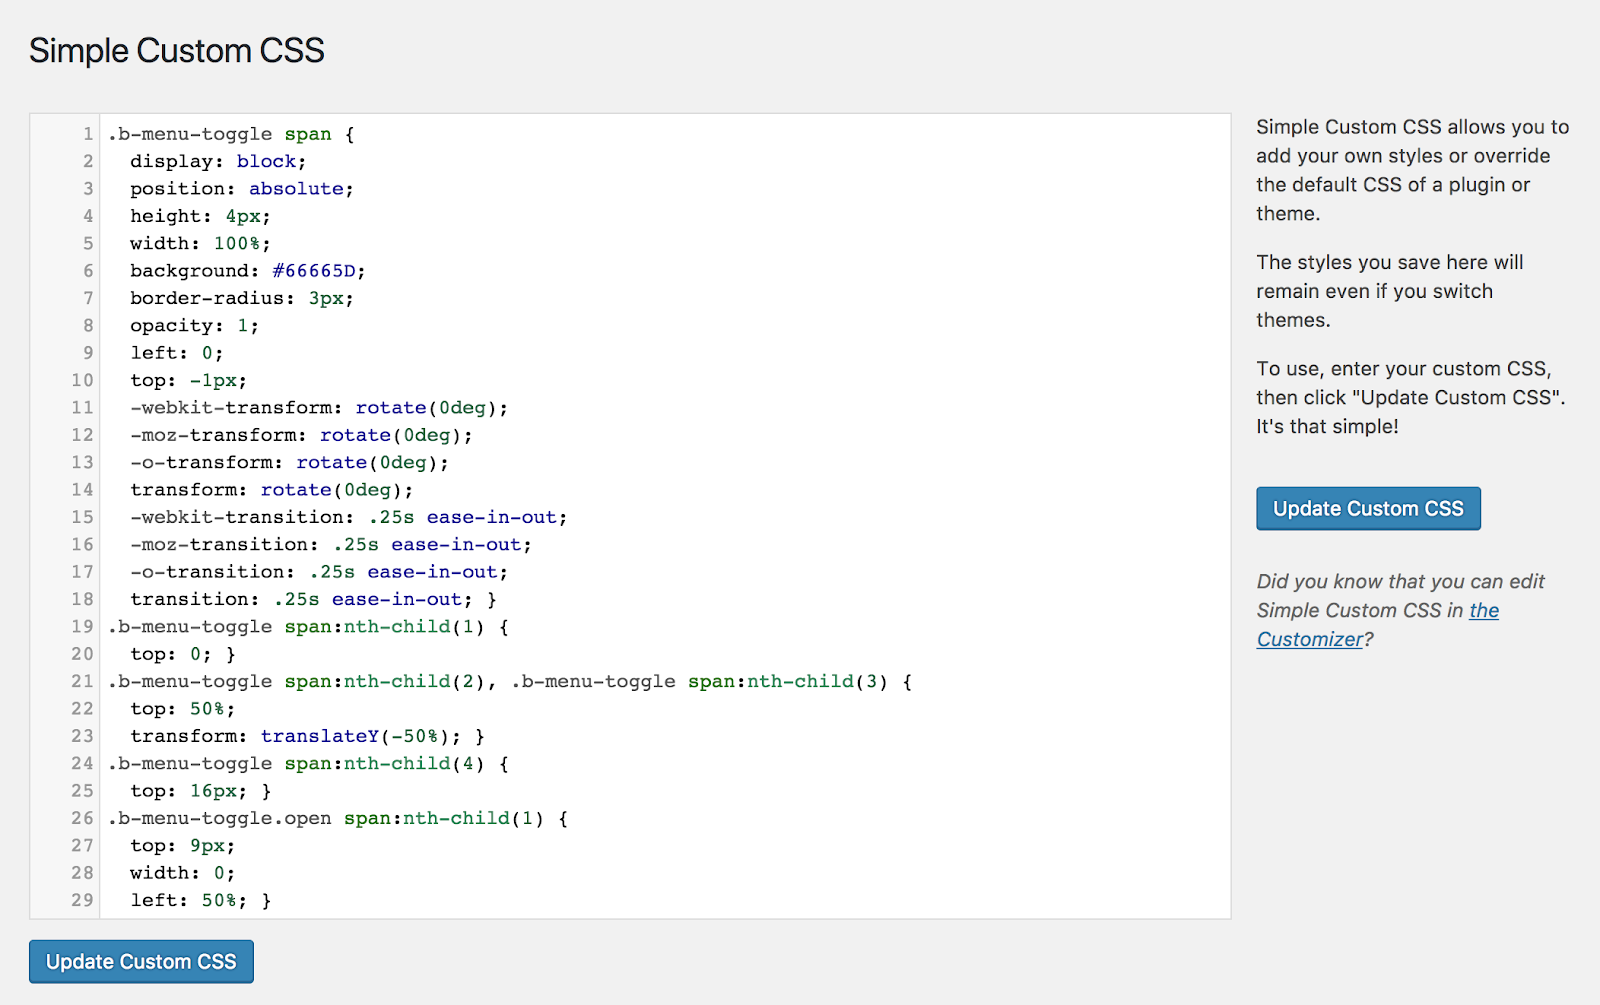 Pasting custom CSS in WordPress.